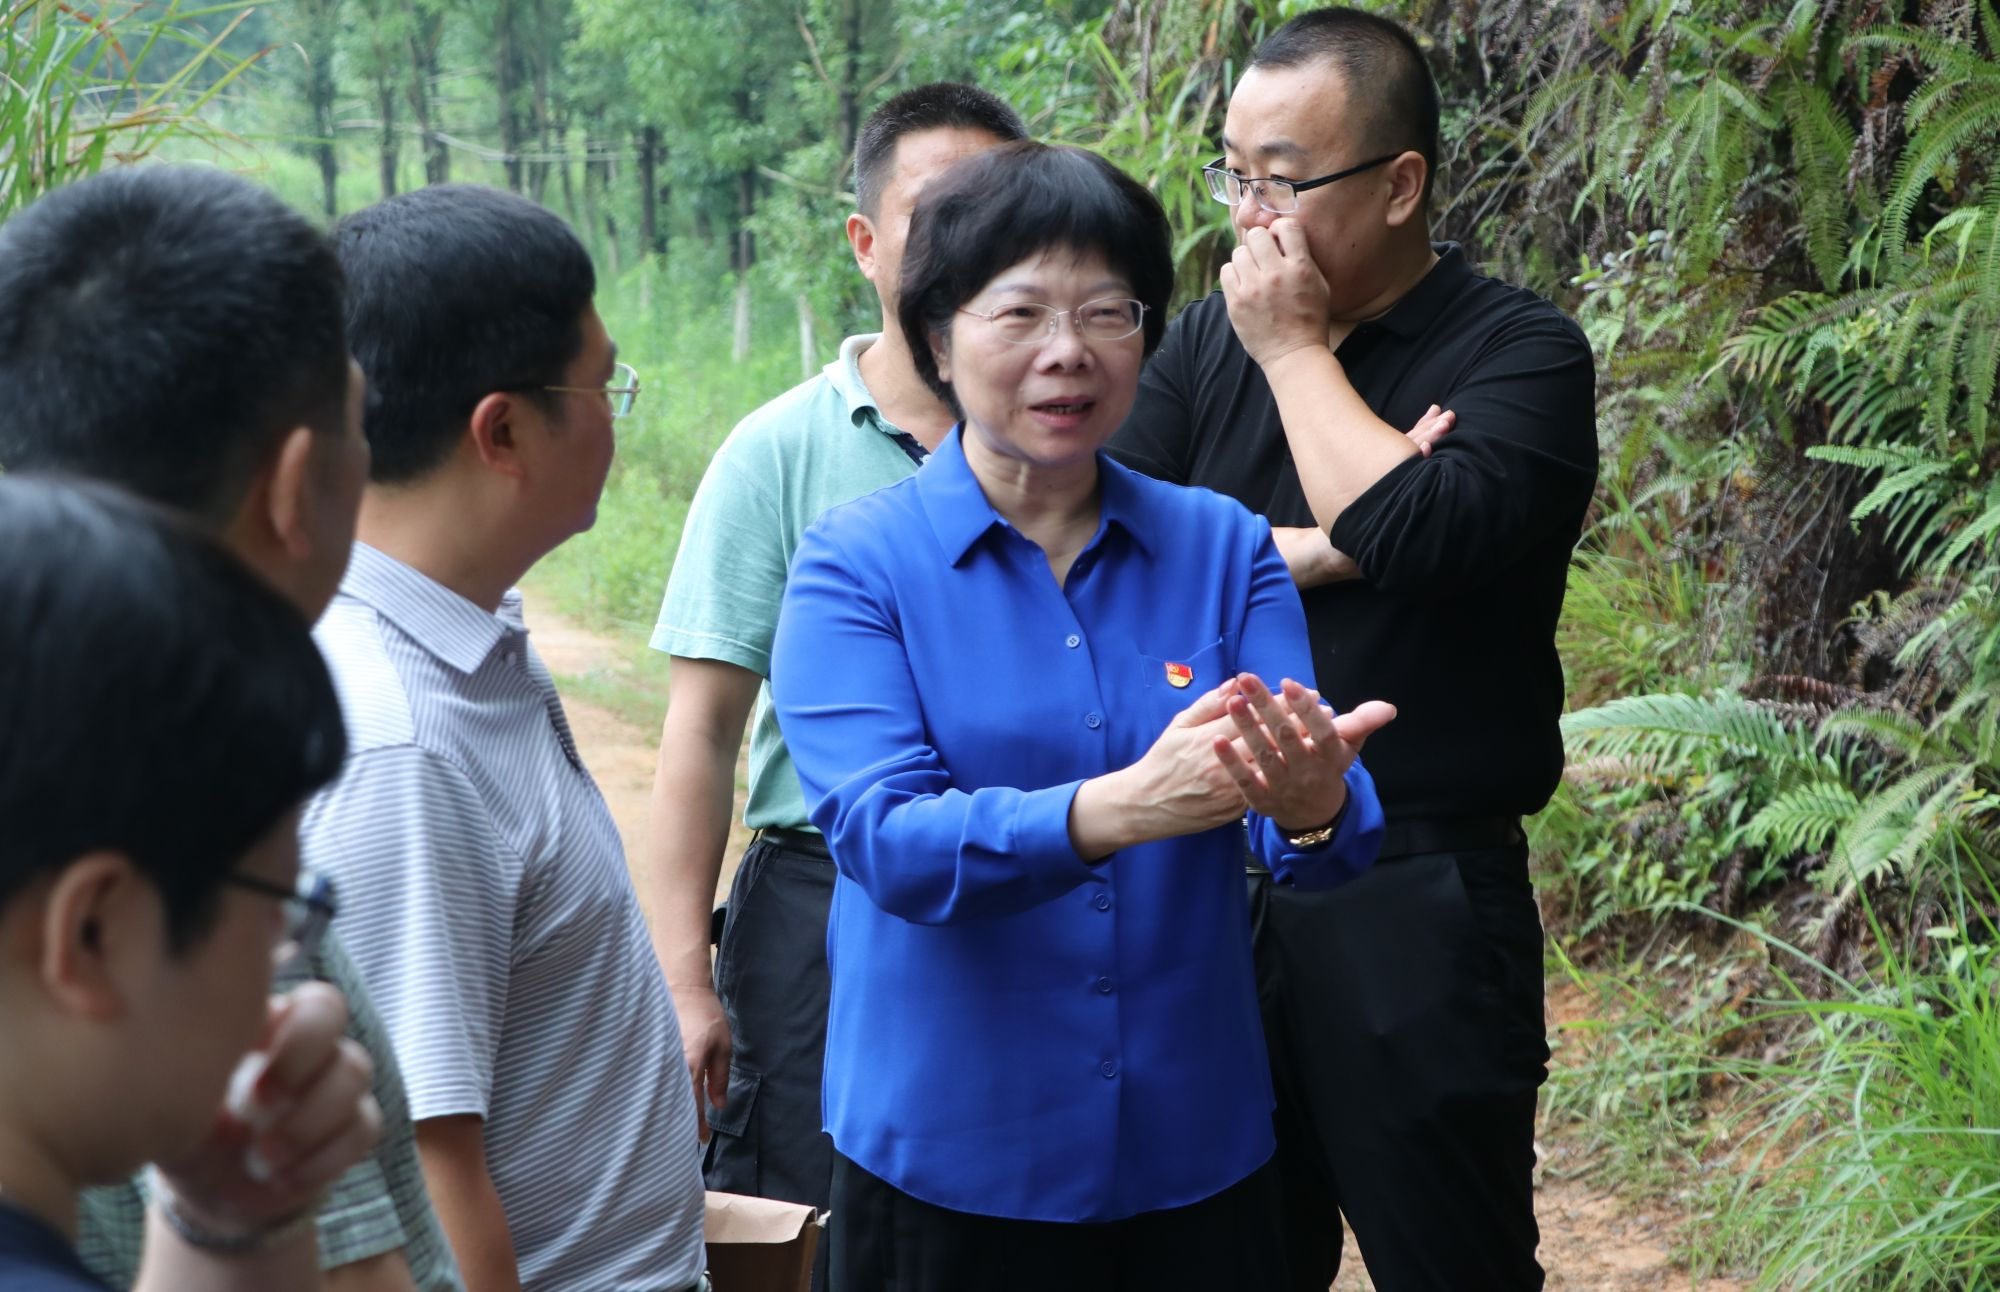 University Council Chairman Organized Poverty Relief Work in Heyuan, Guangdong